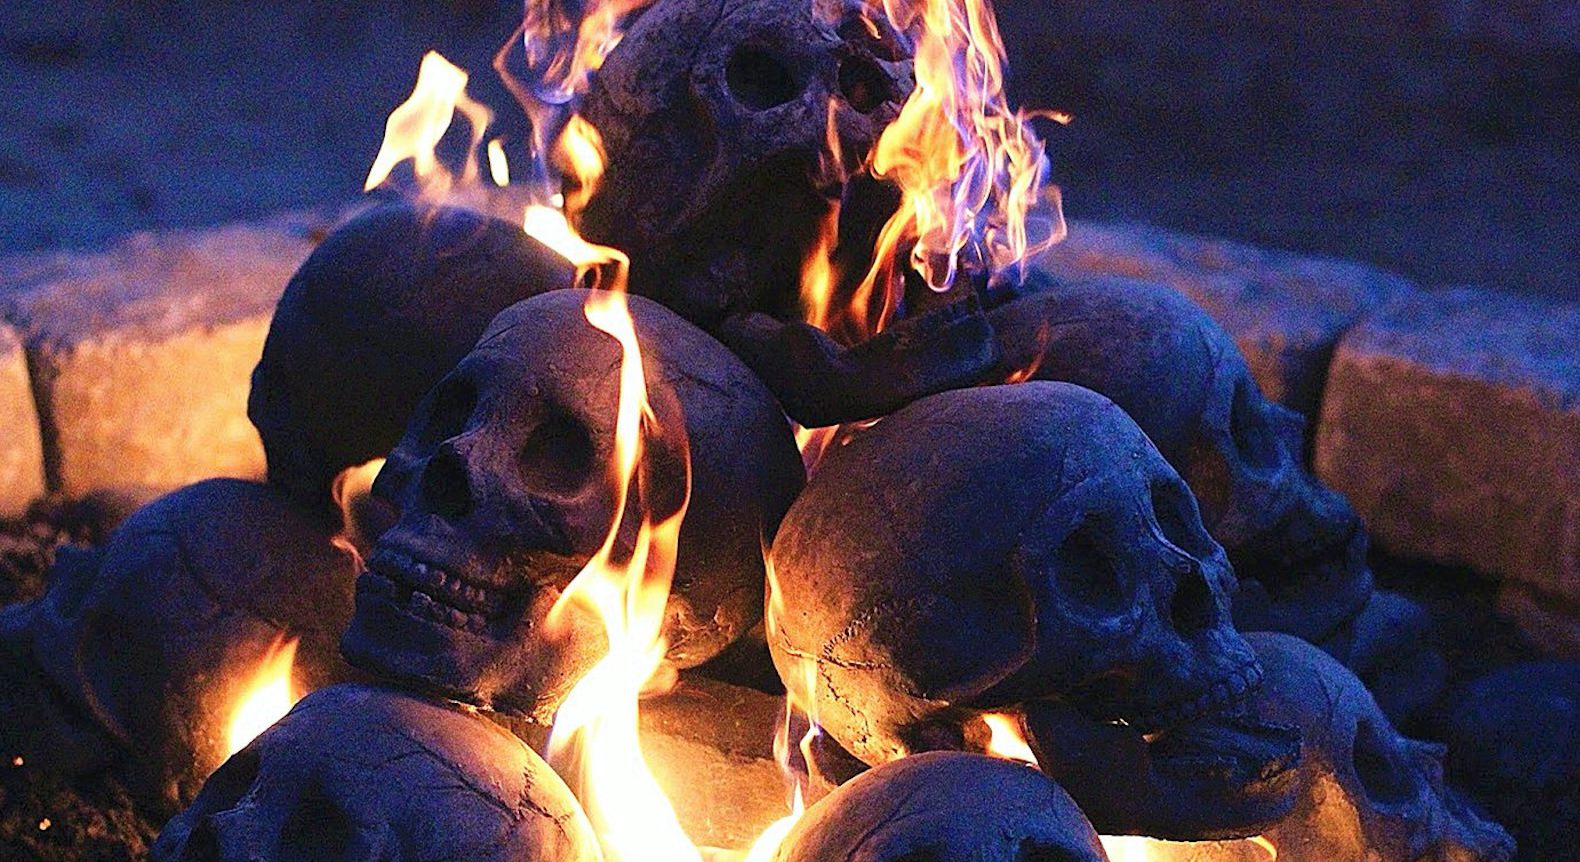 This Halloween, these skull logs will turn your fireplace into the pits of Hell